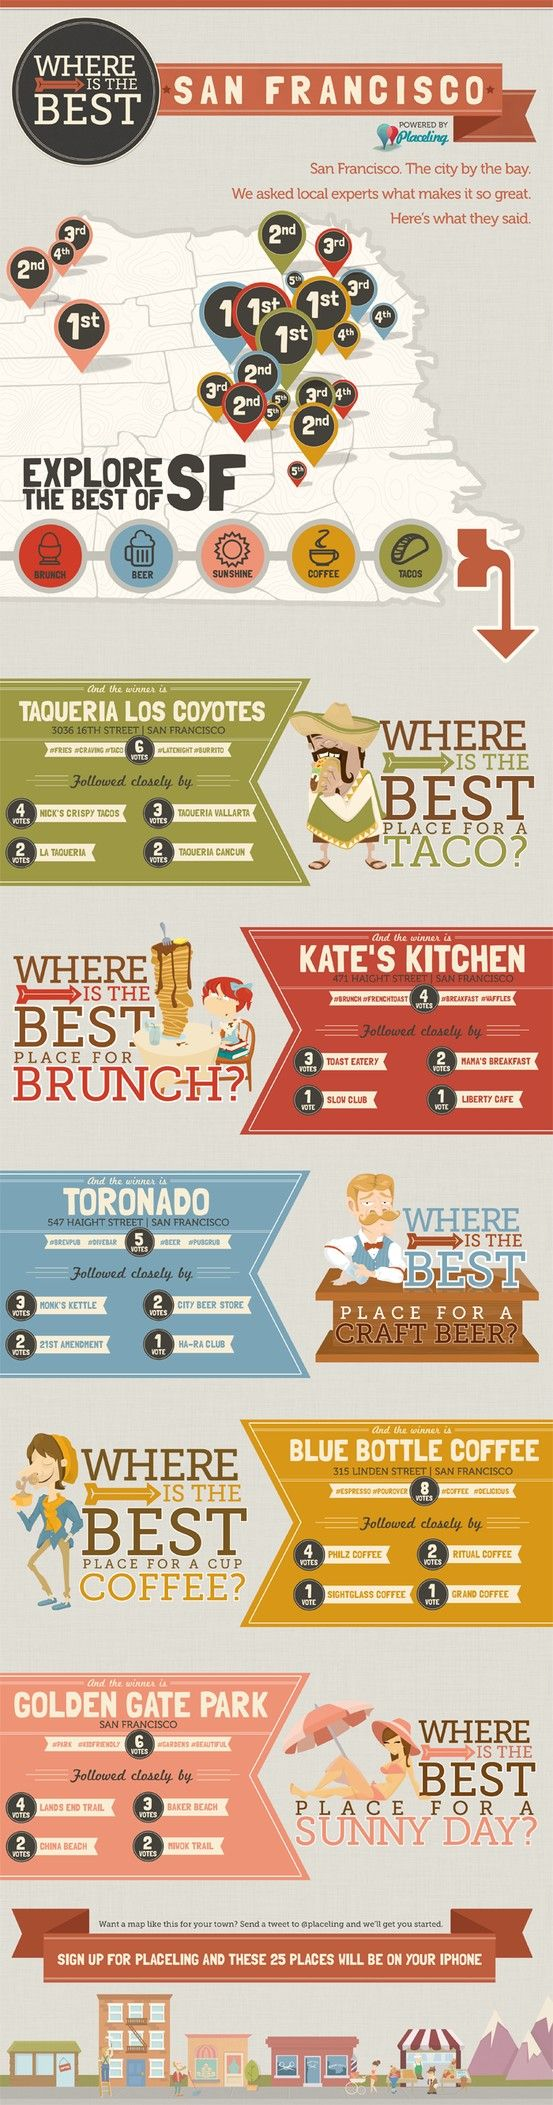 A crowdsourced infographic of the best places in San Francisco. The best places to go on a sunny day or find a great coffee/brunch/craft beer/taco